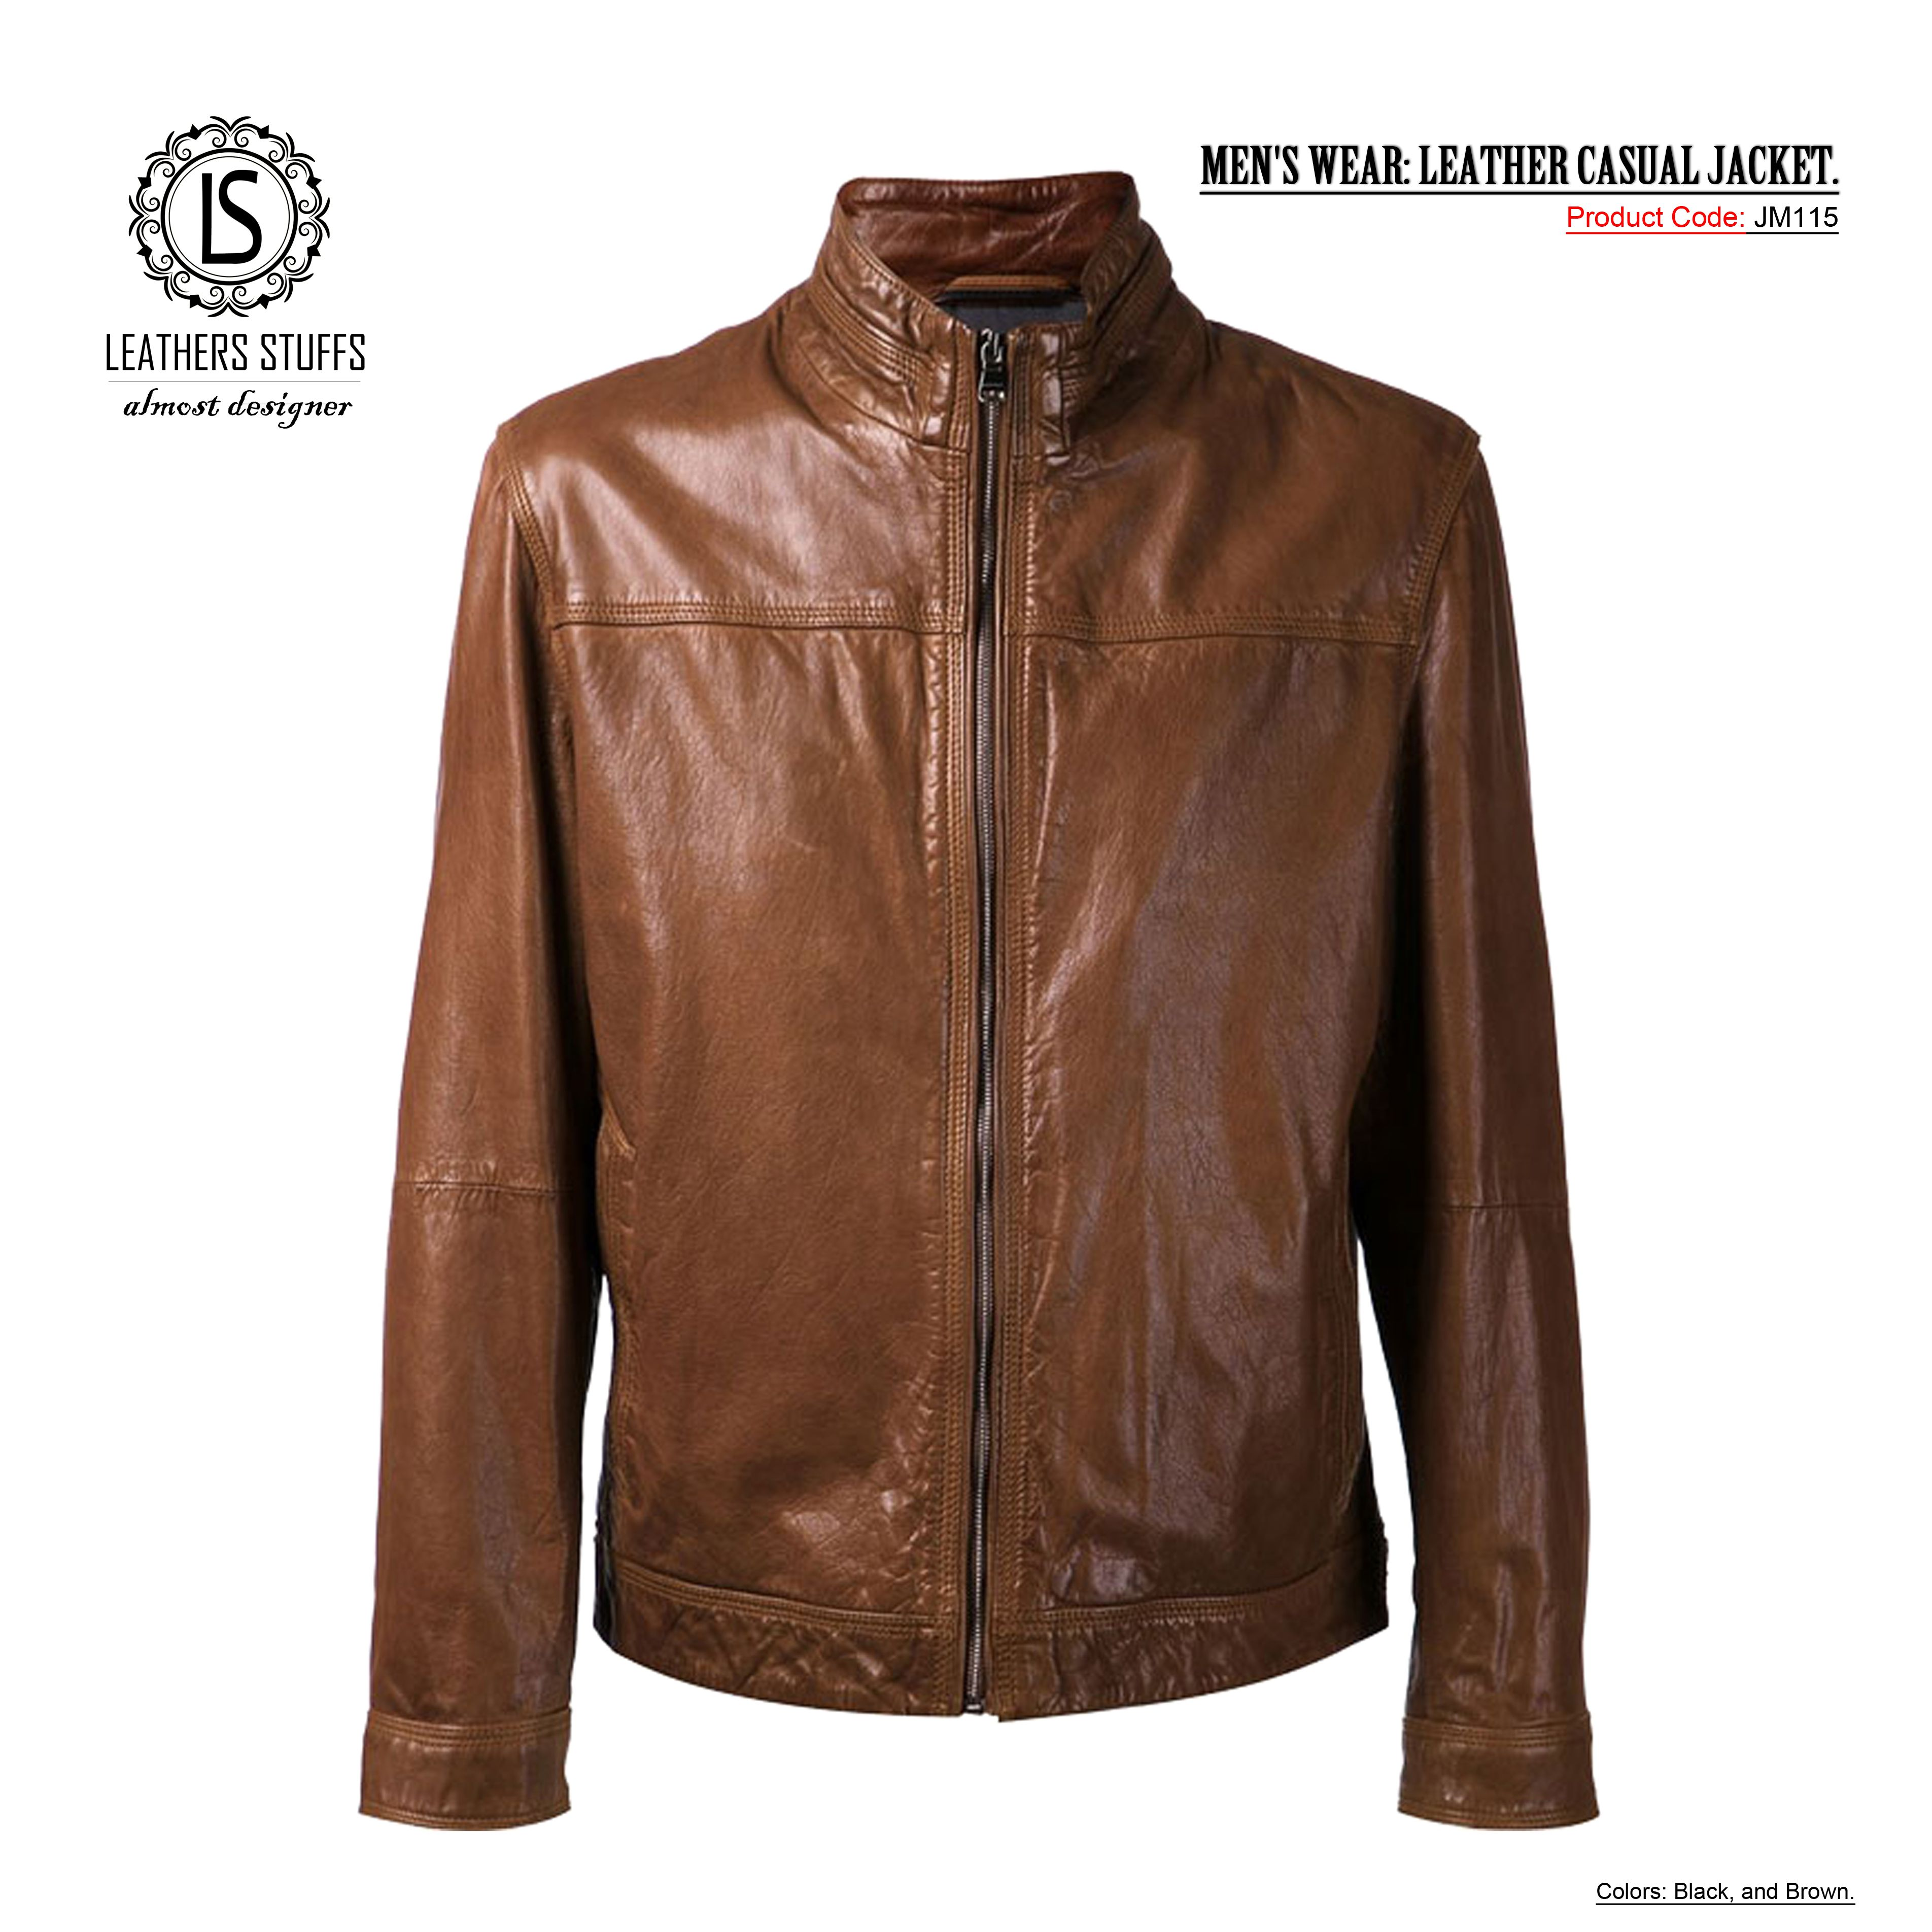 MEN'S WEAR LEATHER CASUAL JACKET. Colors Black and Brown